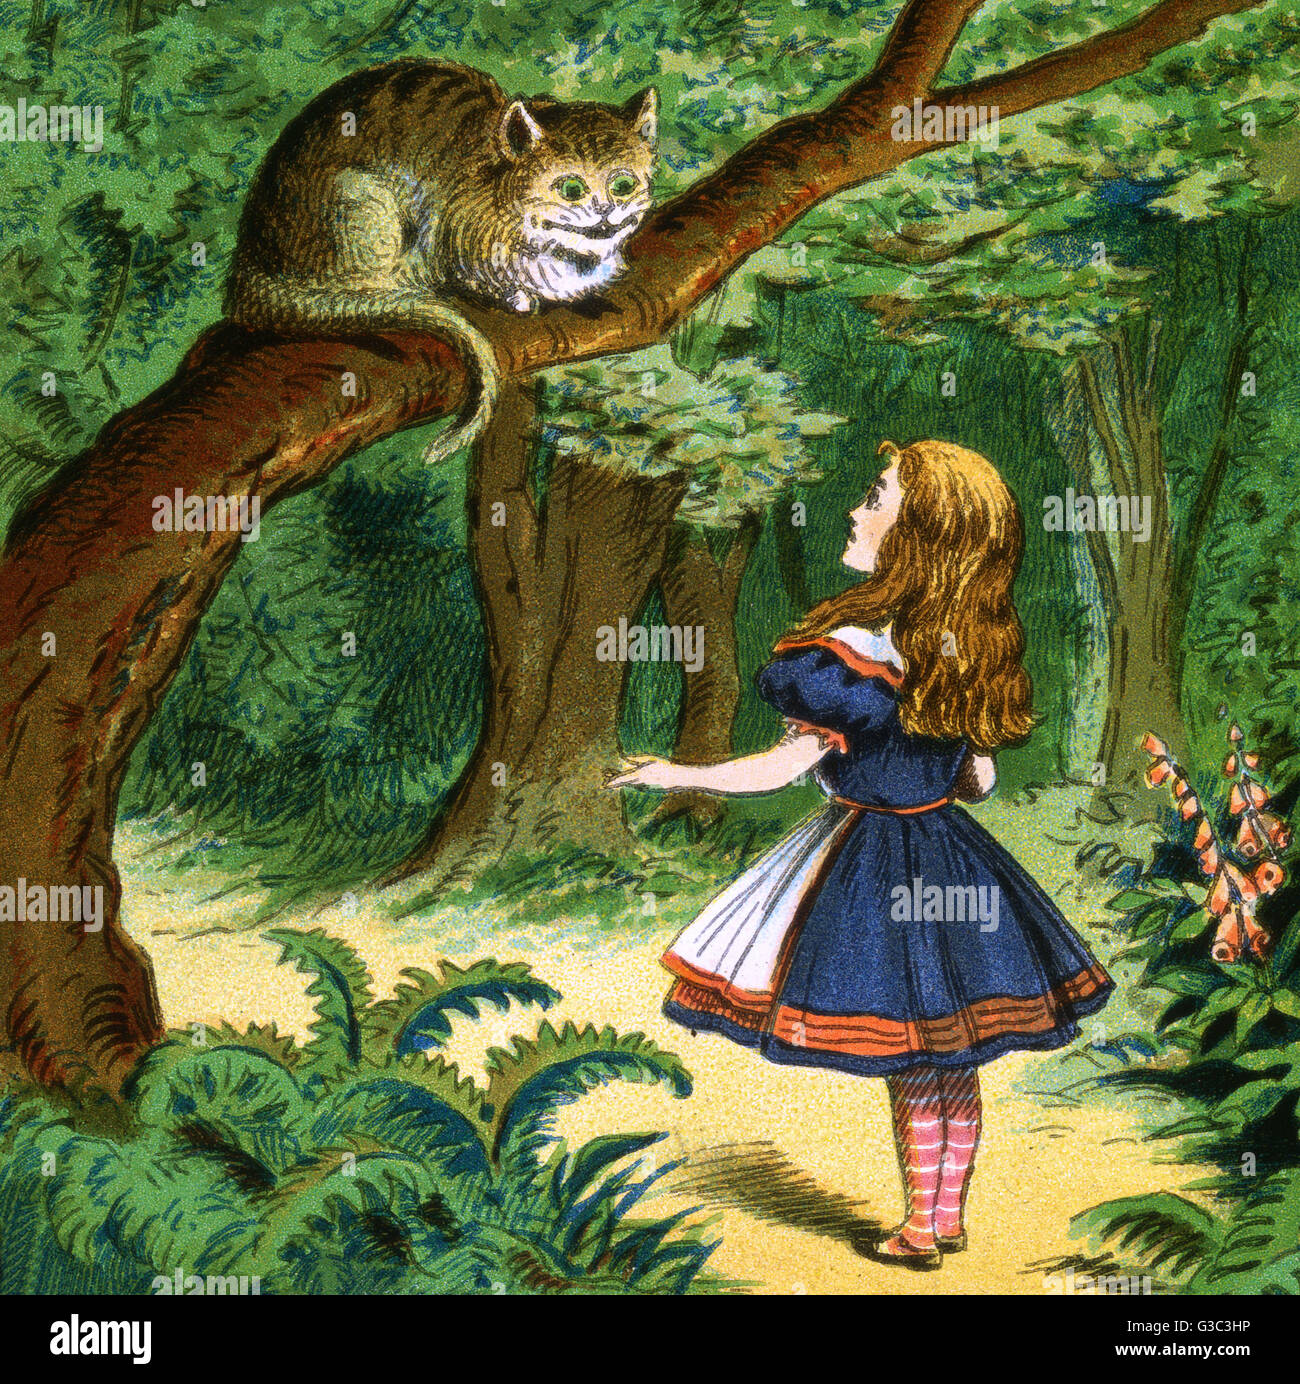 Alice in Wonderland, Alice has a conversation with a Cheshire Cat.      Date: early 20th century - Stock Image